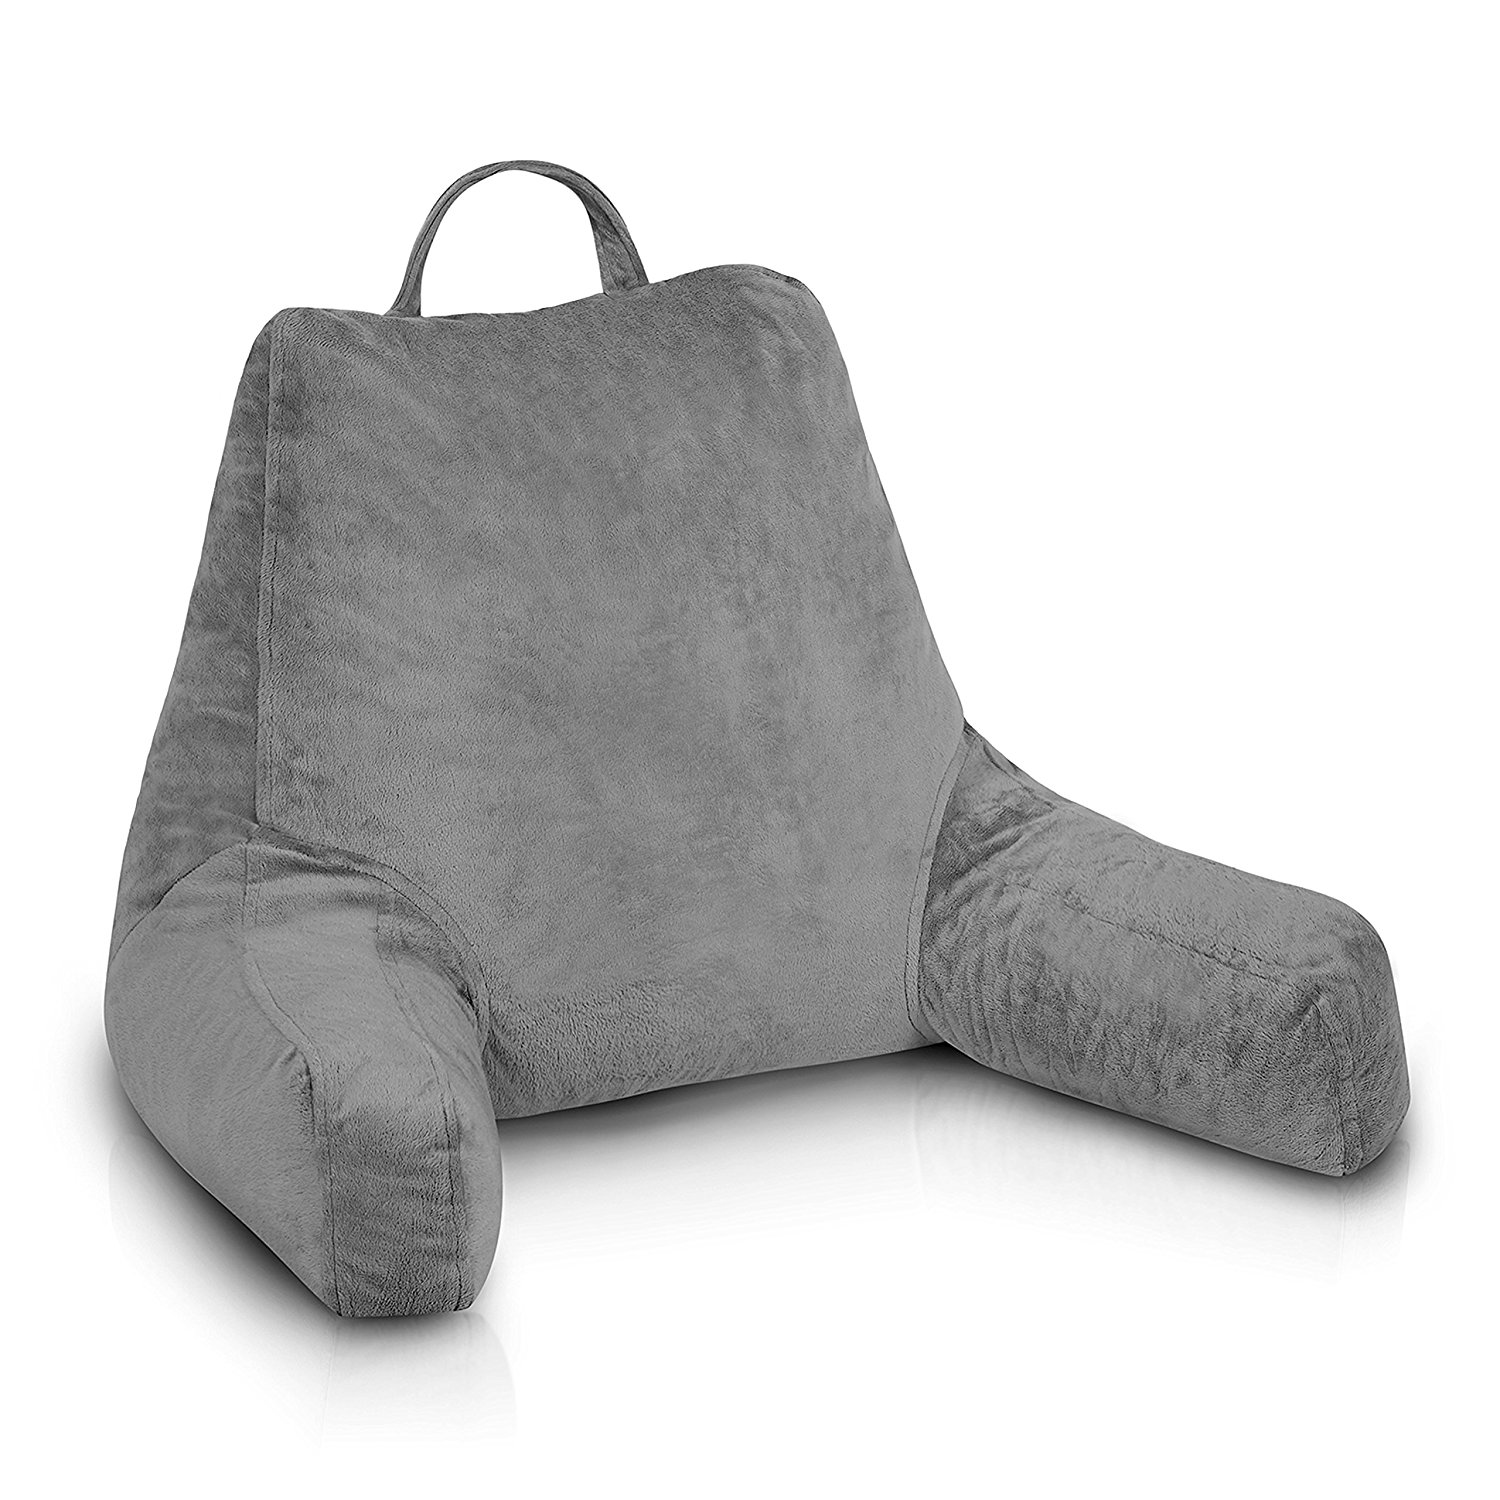 Bed Rest Pillow Target | Bed Pillow with Arms | Plush Bedrest